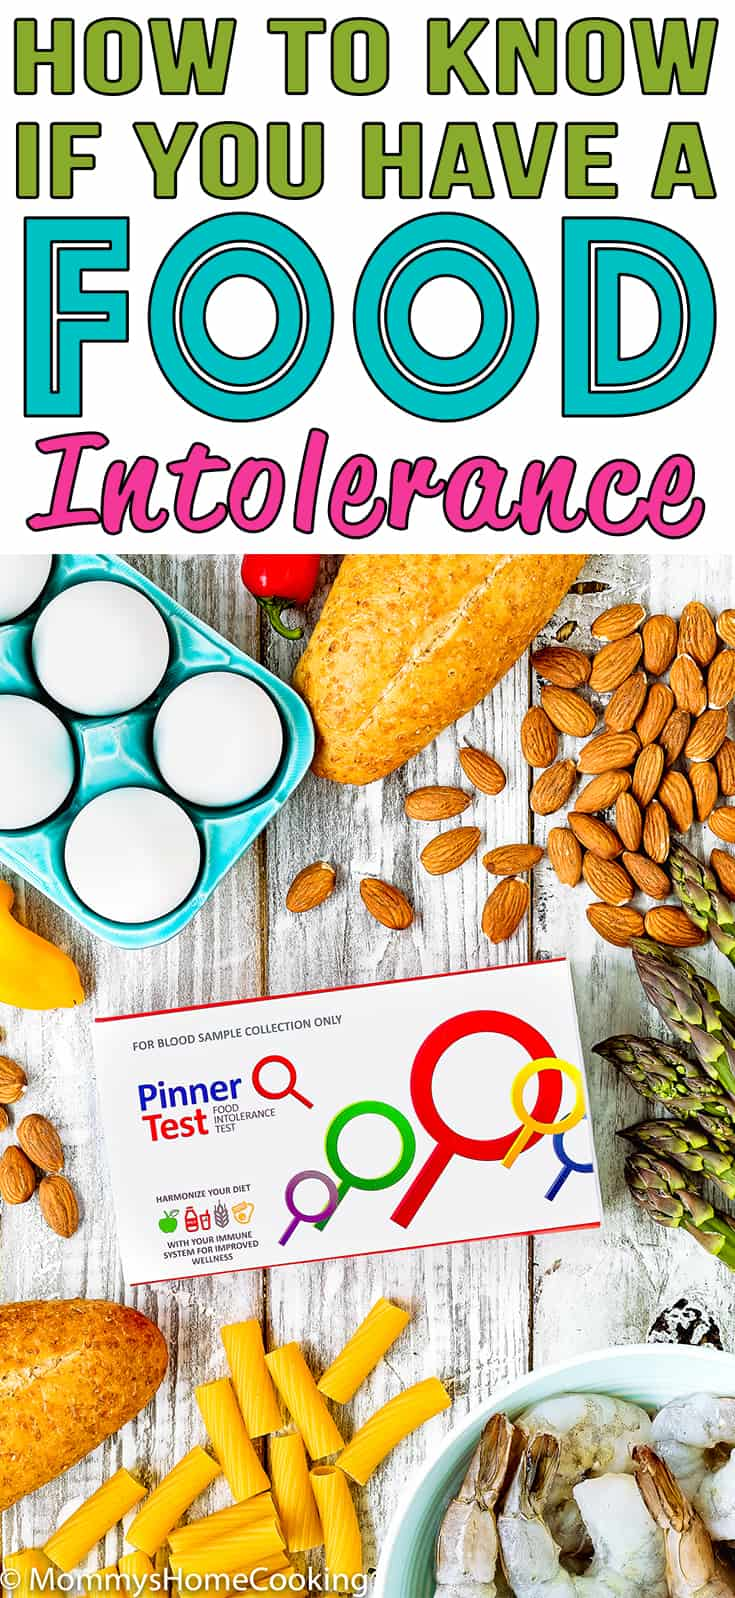 If you feel under the weather all the time and your doctor never find an obvious reason why you might have a food intolerance. Click to learn How to Know If You Have A Food Intolerance with an easy and convenient test you can takein the comfort of your own home. https://mommyshomecooking.com